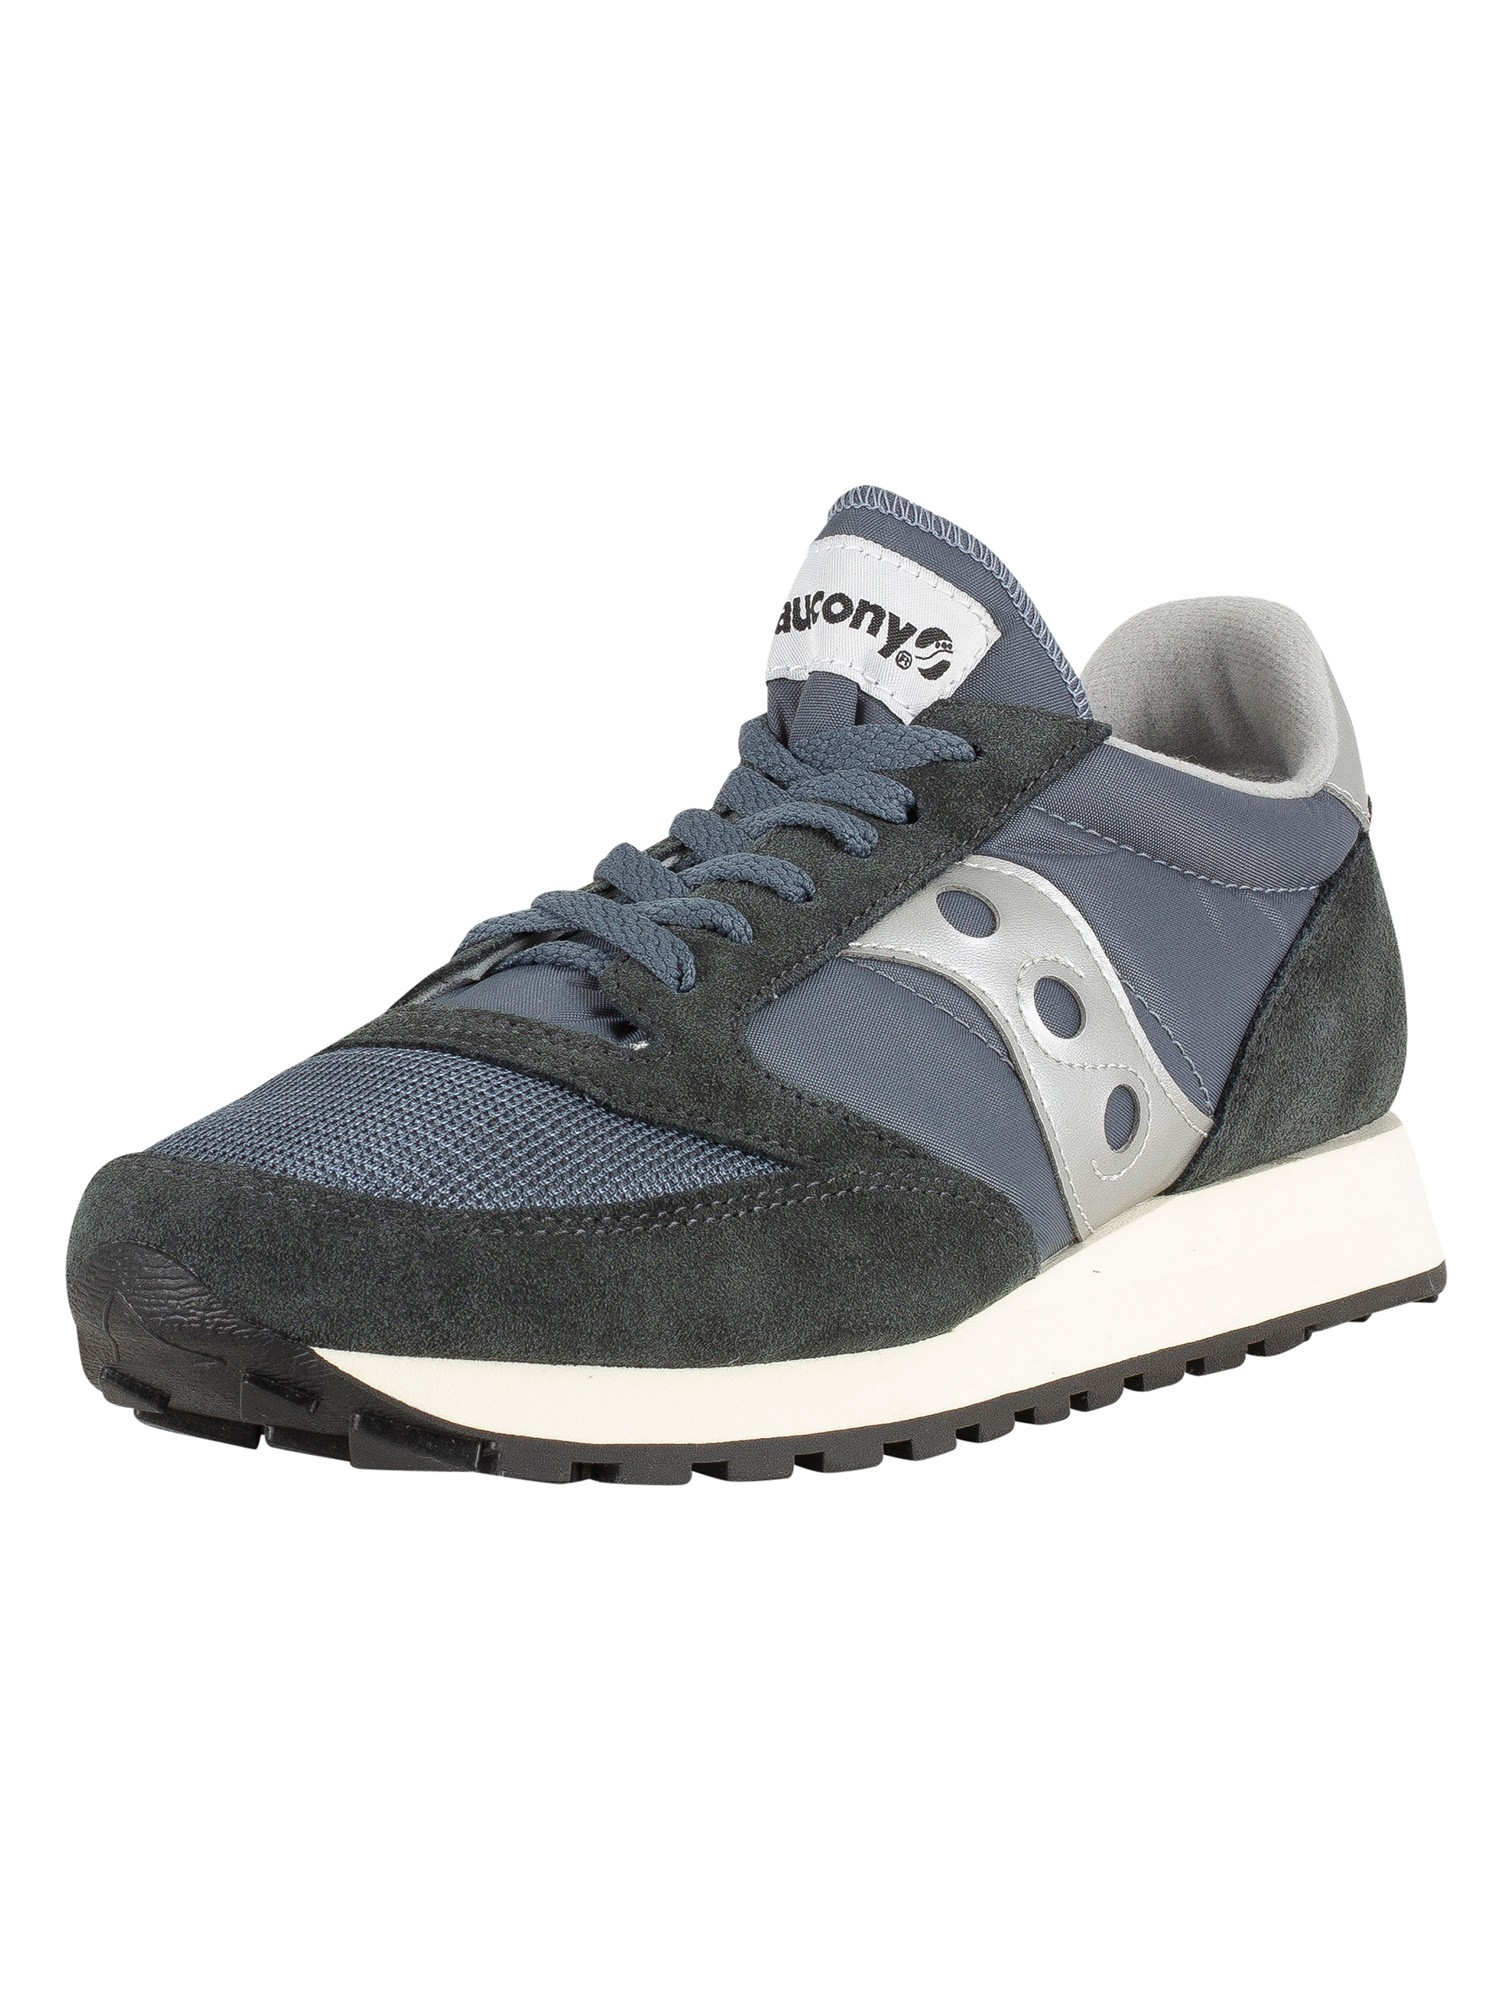 official photos d7ba9 769ef Saucony Jazz Original Vintage Trainers - Blue/Navy/Silver